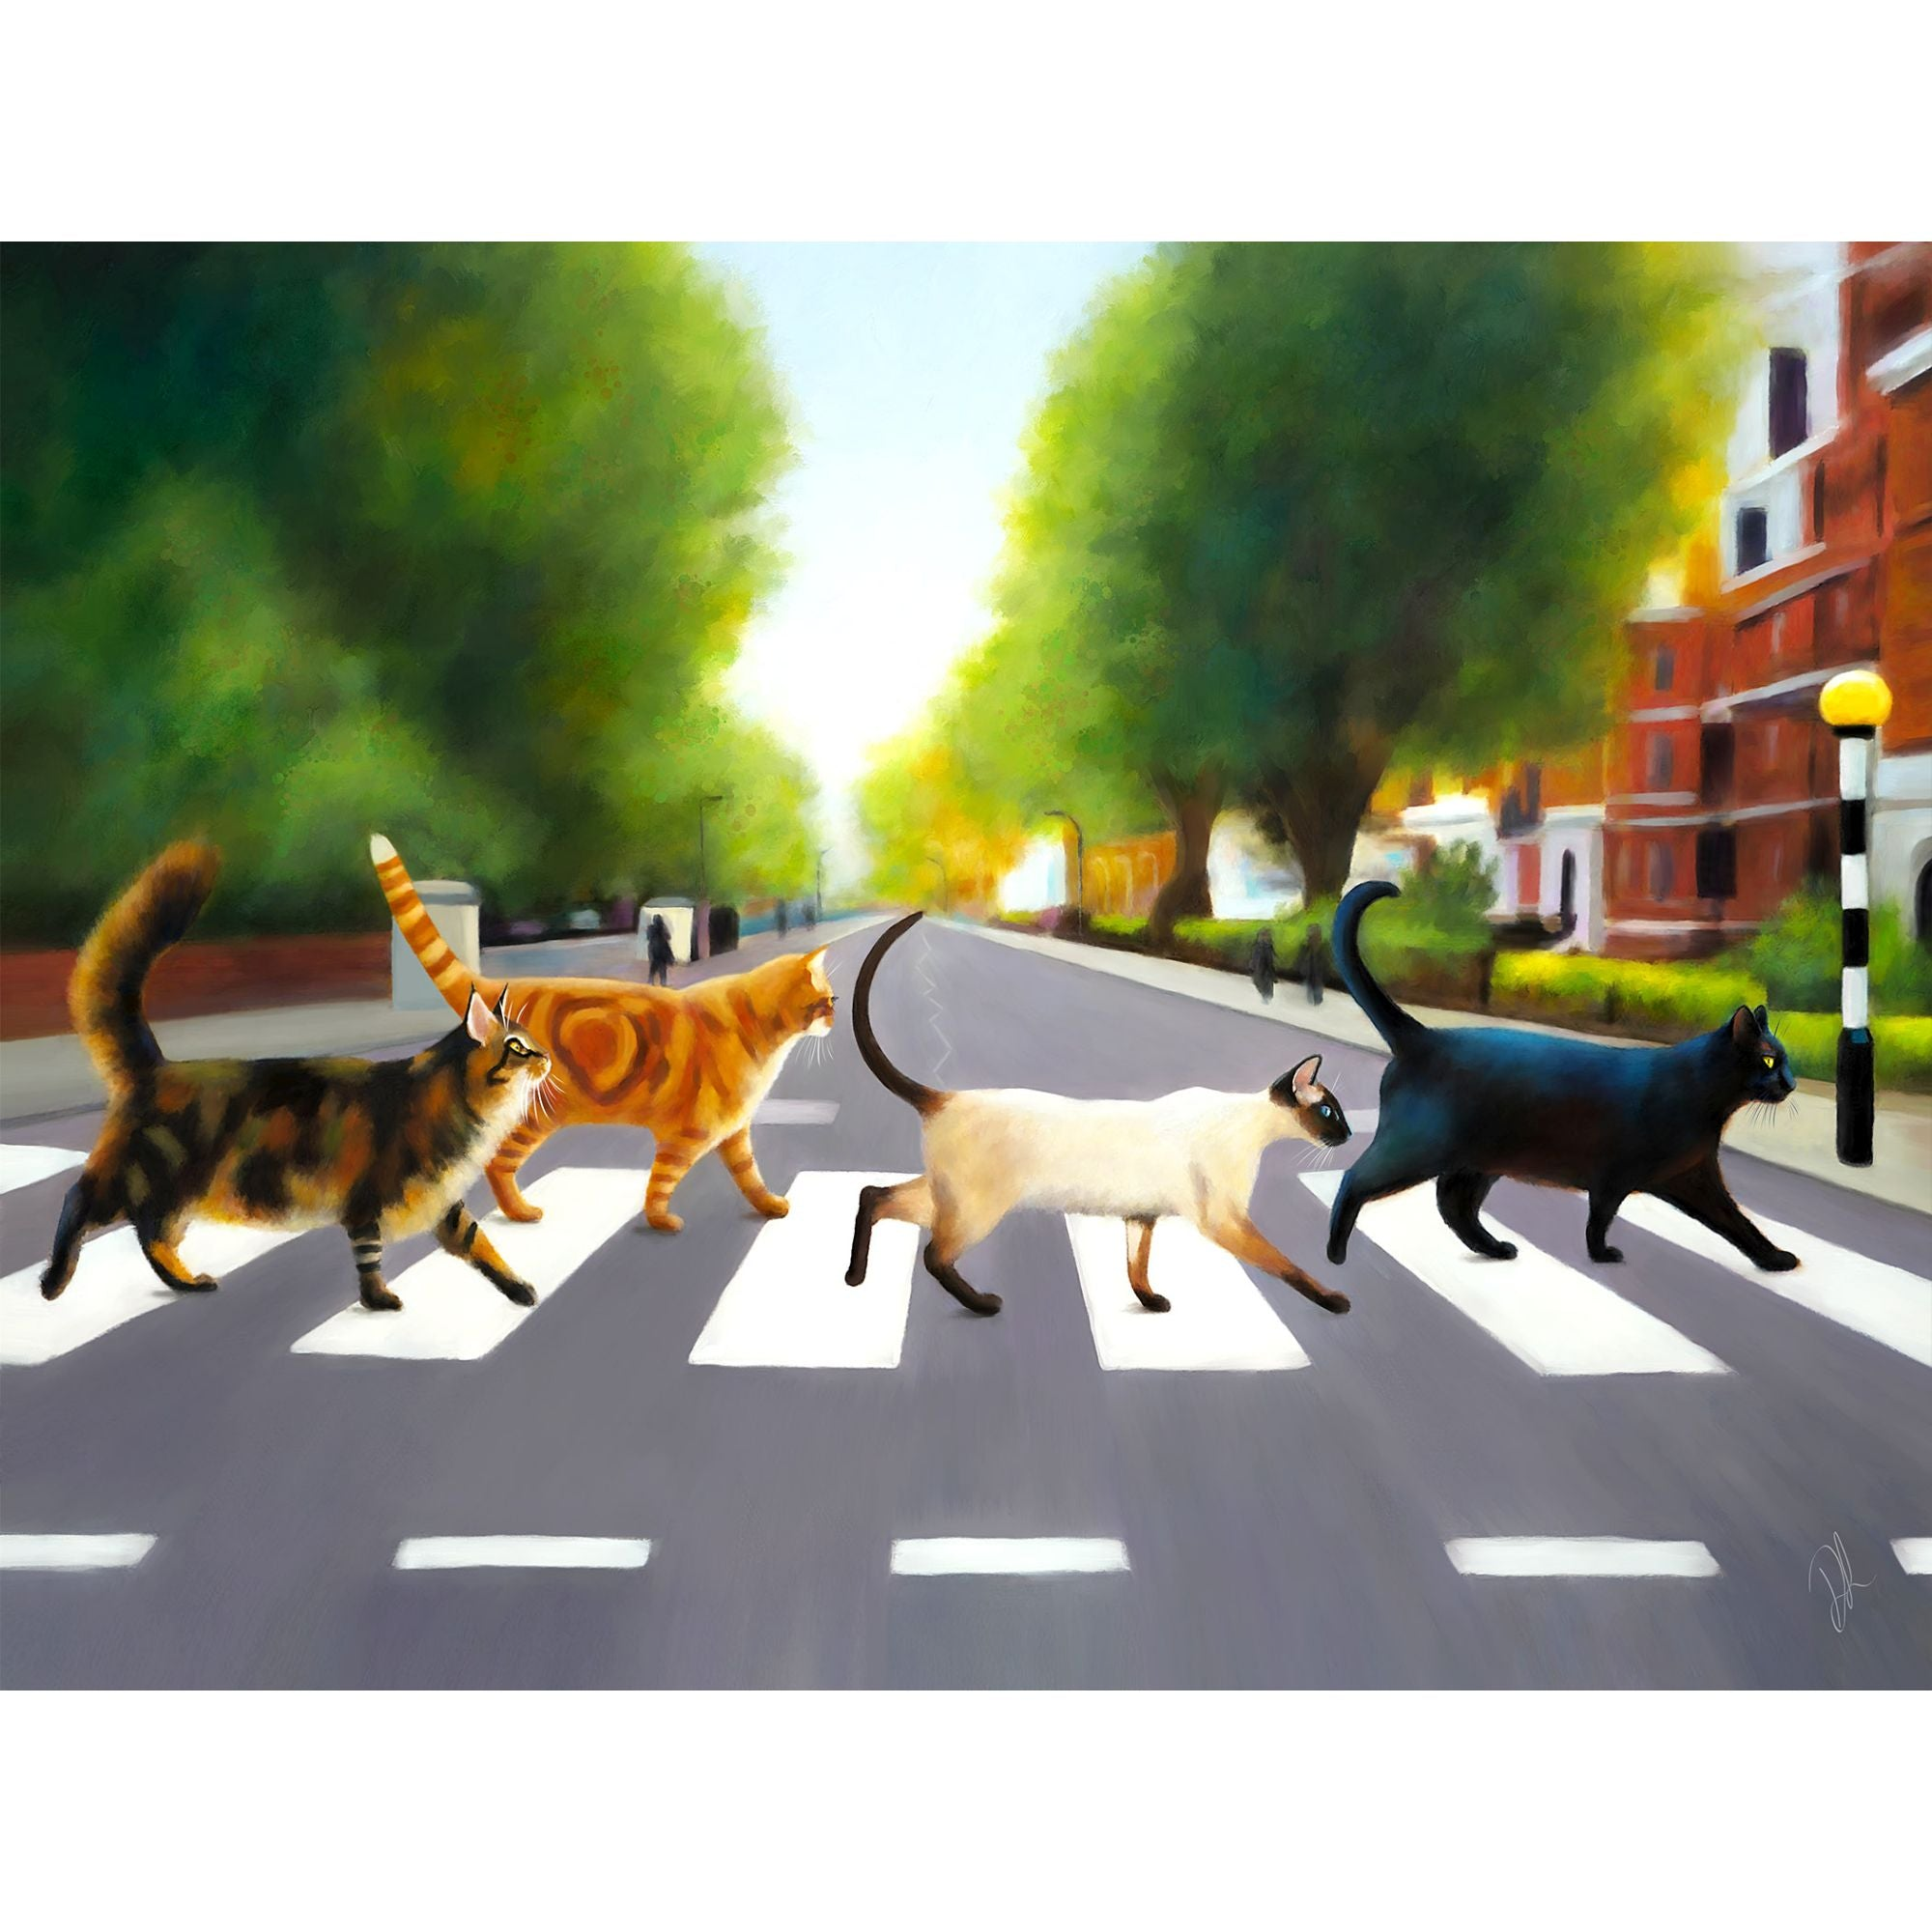 Four cats crossing Abbey Road in London.  Denise Laurent art commemorating the seminal Abbey Road album by The Beatles.